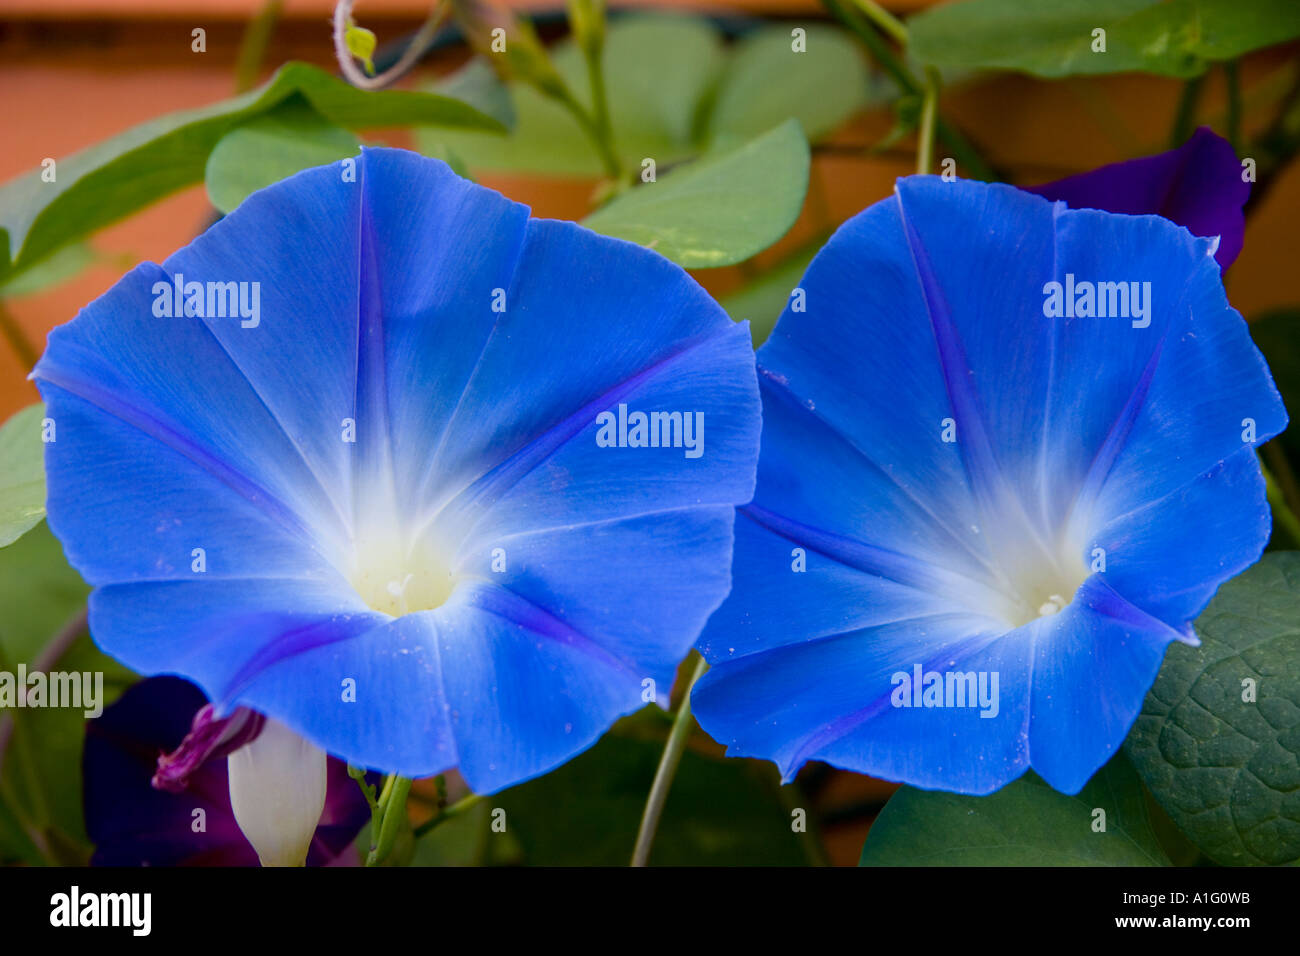 Ipomoea tricolor 'Heavenly Blue'. Close up shot of two Heavenly Blue Morning Glories taken in late summer. - Stock Image